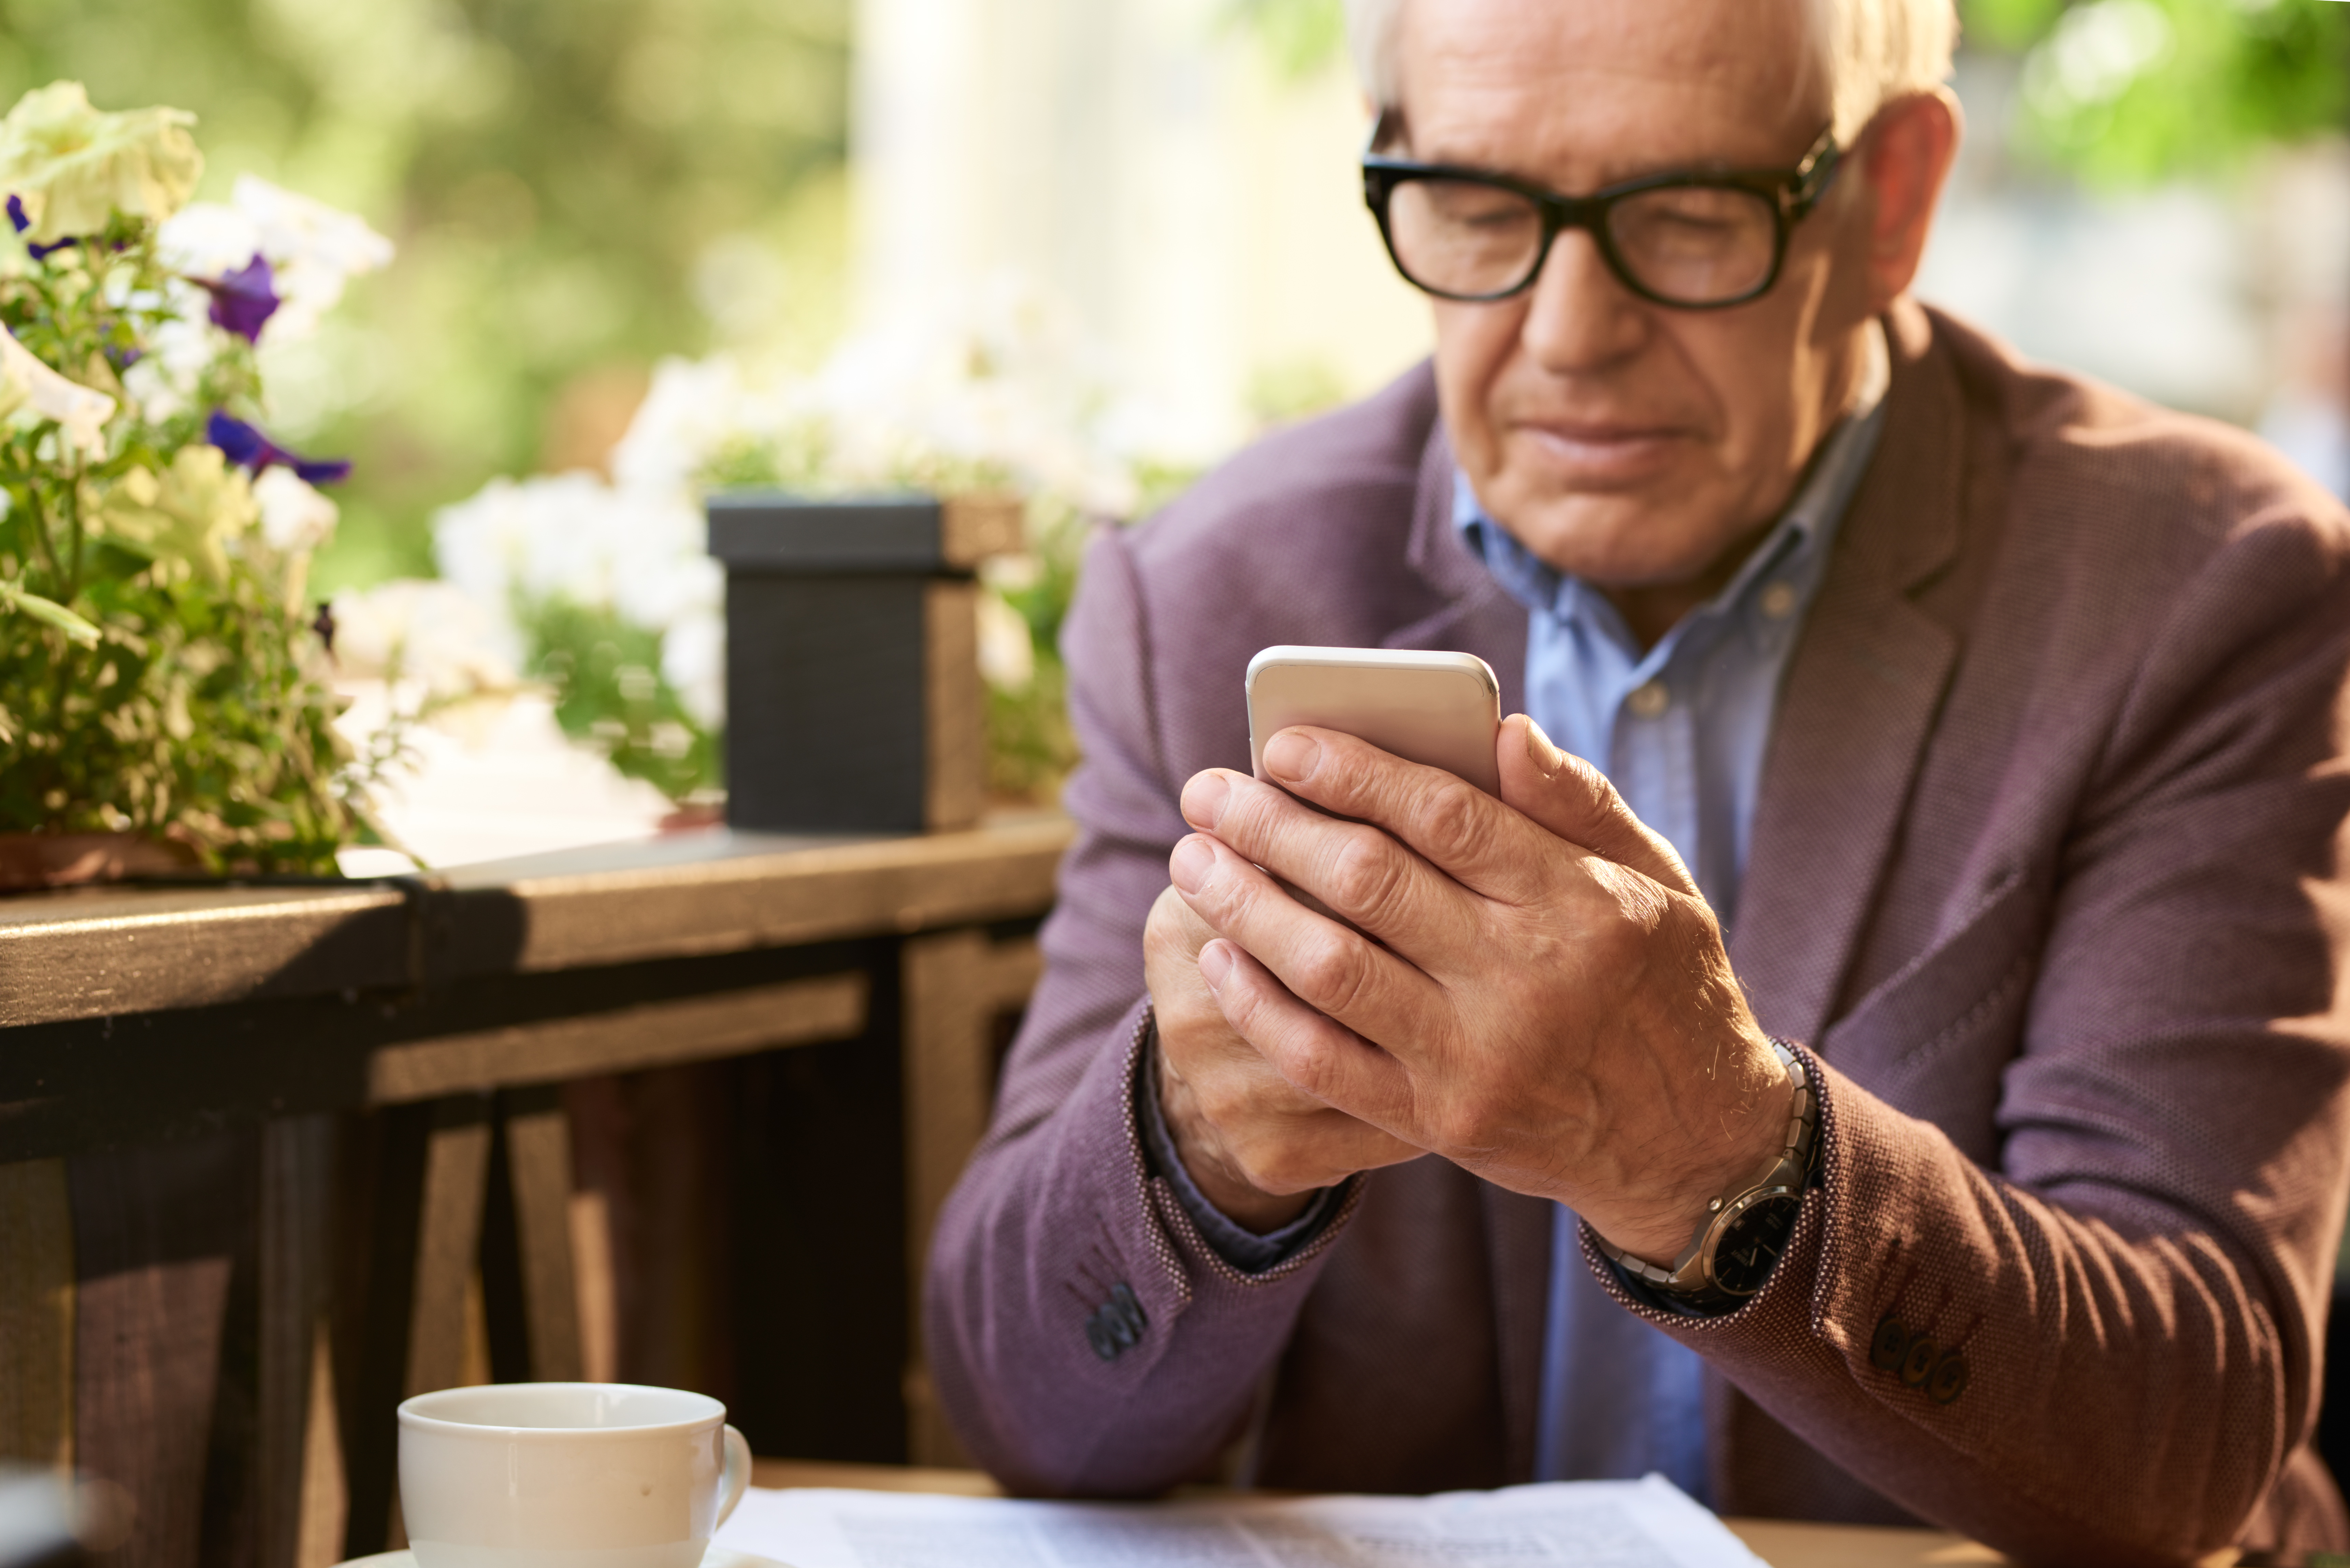 Portrait of modern senior man using smartphone in outdoor cafe, typing text messages